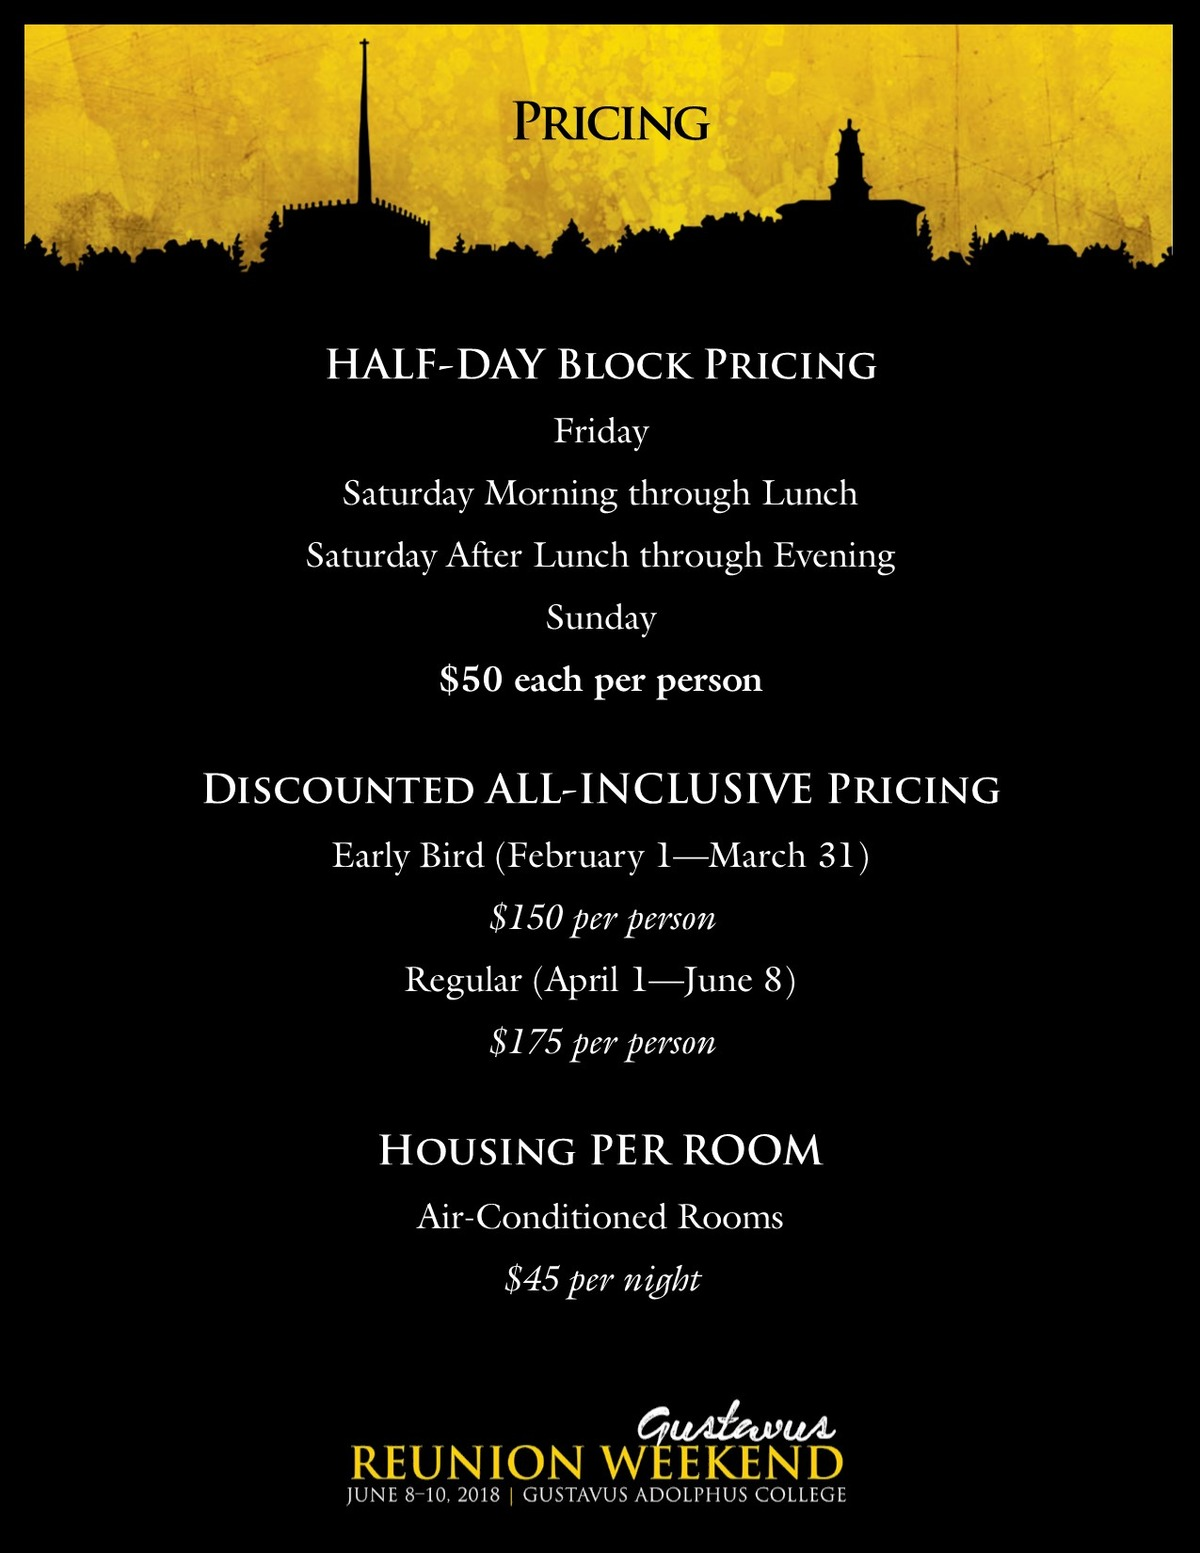 Class specific Reunion Weekend pricing information